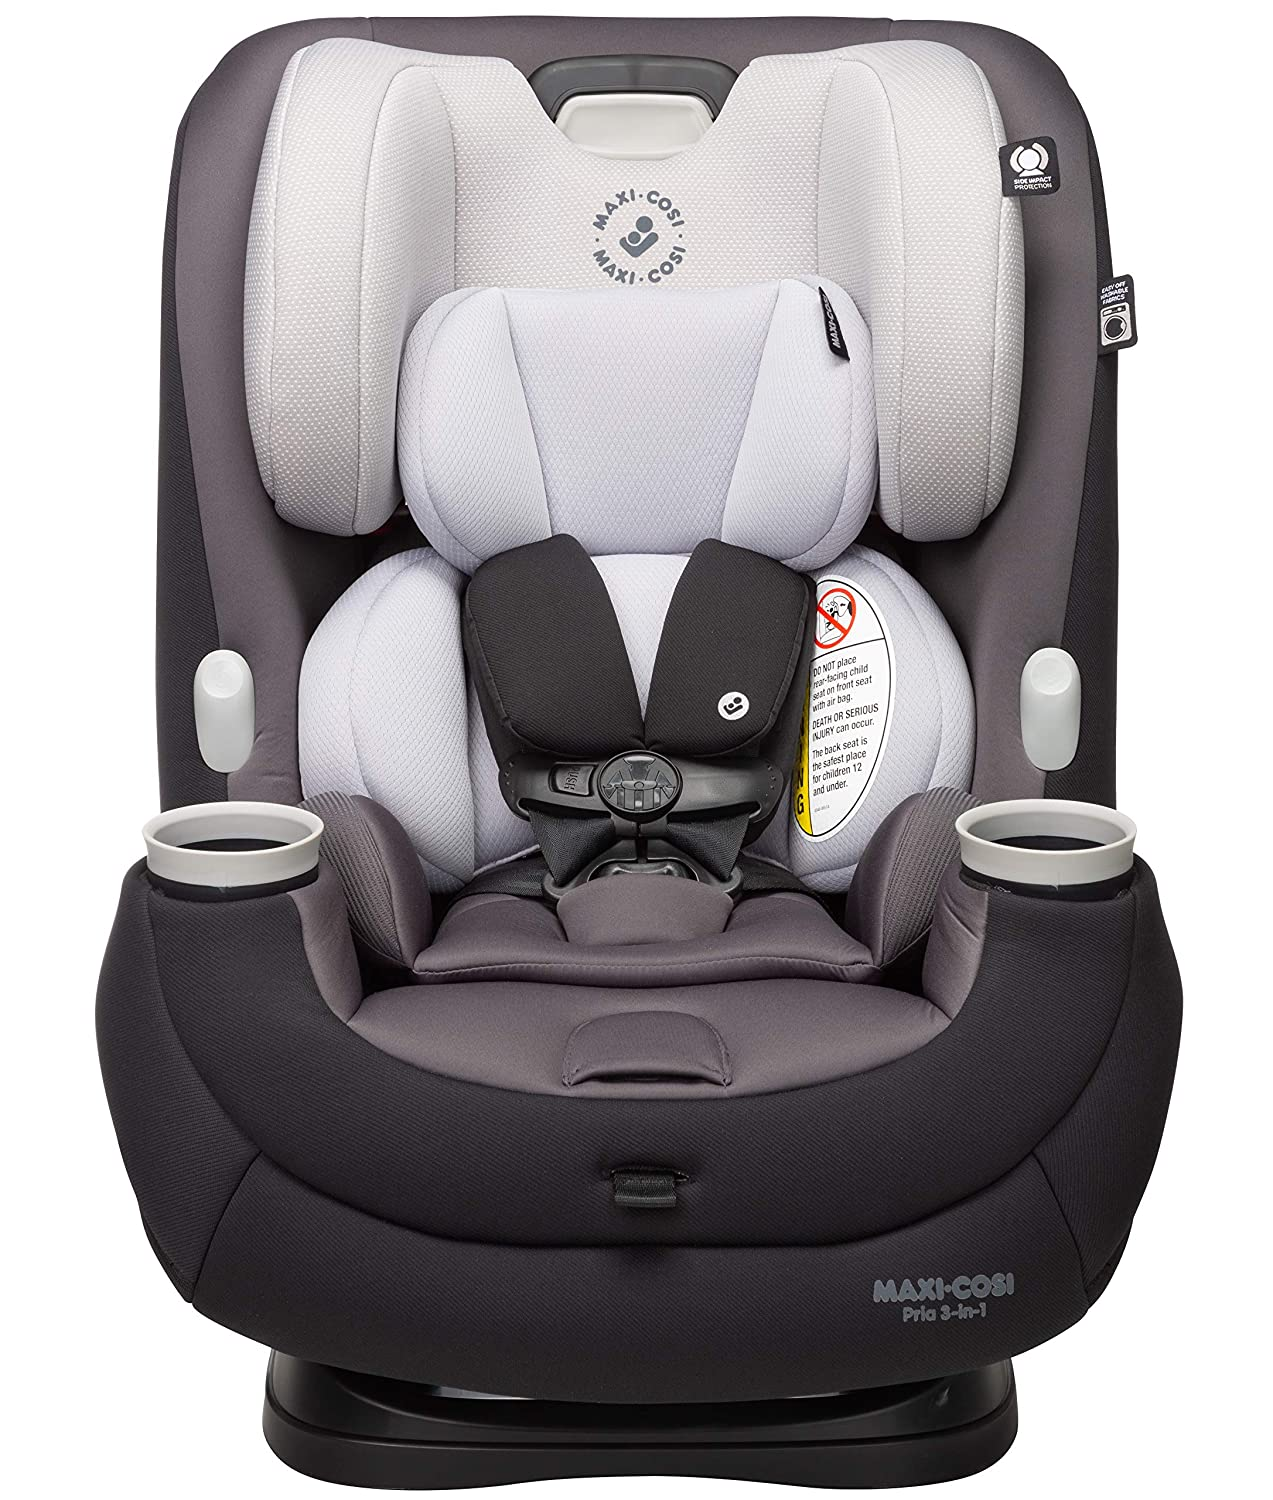 Maxi cosi 3 in 1 Best Car Seat for 4 years old